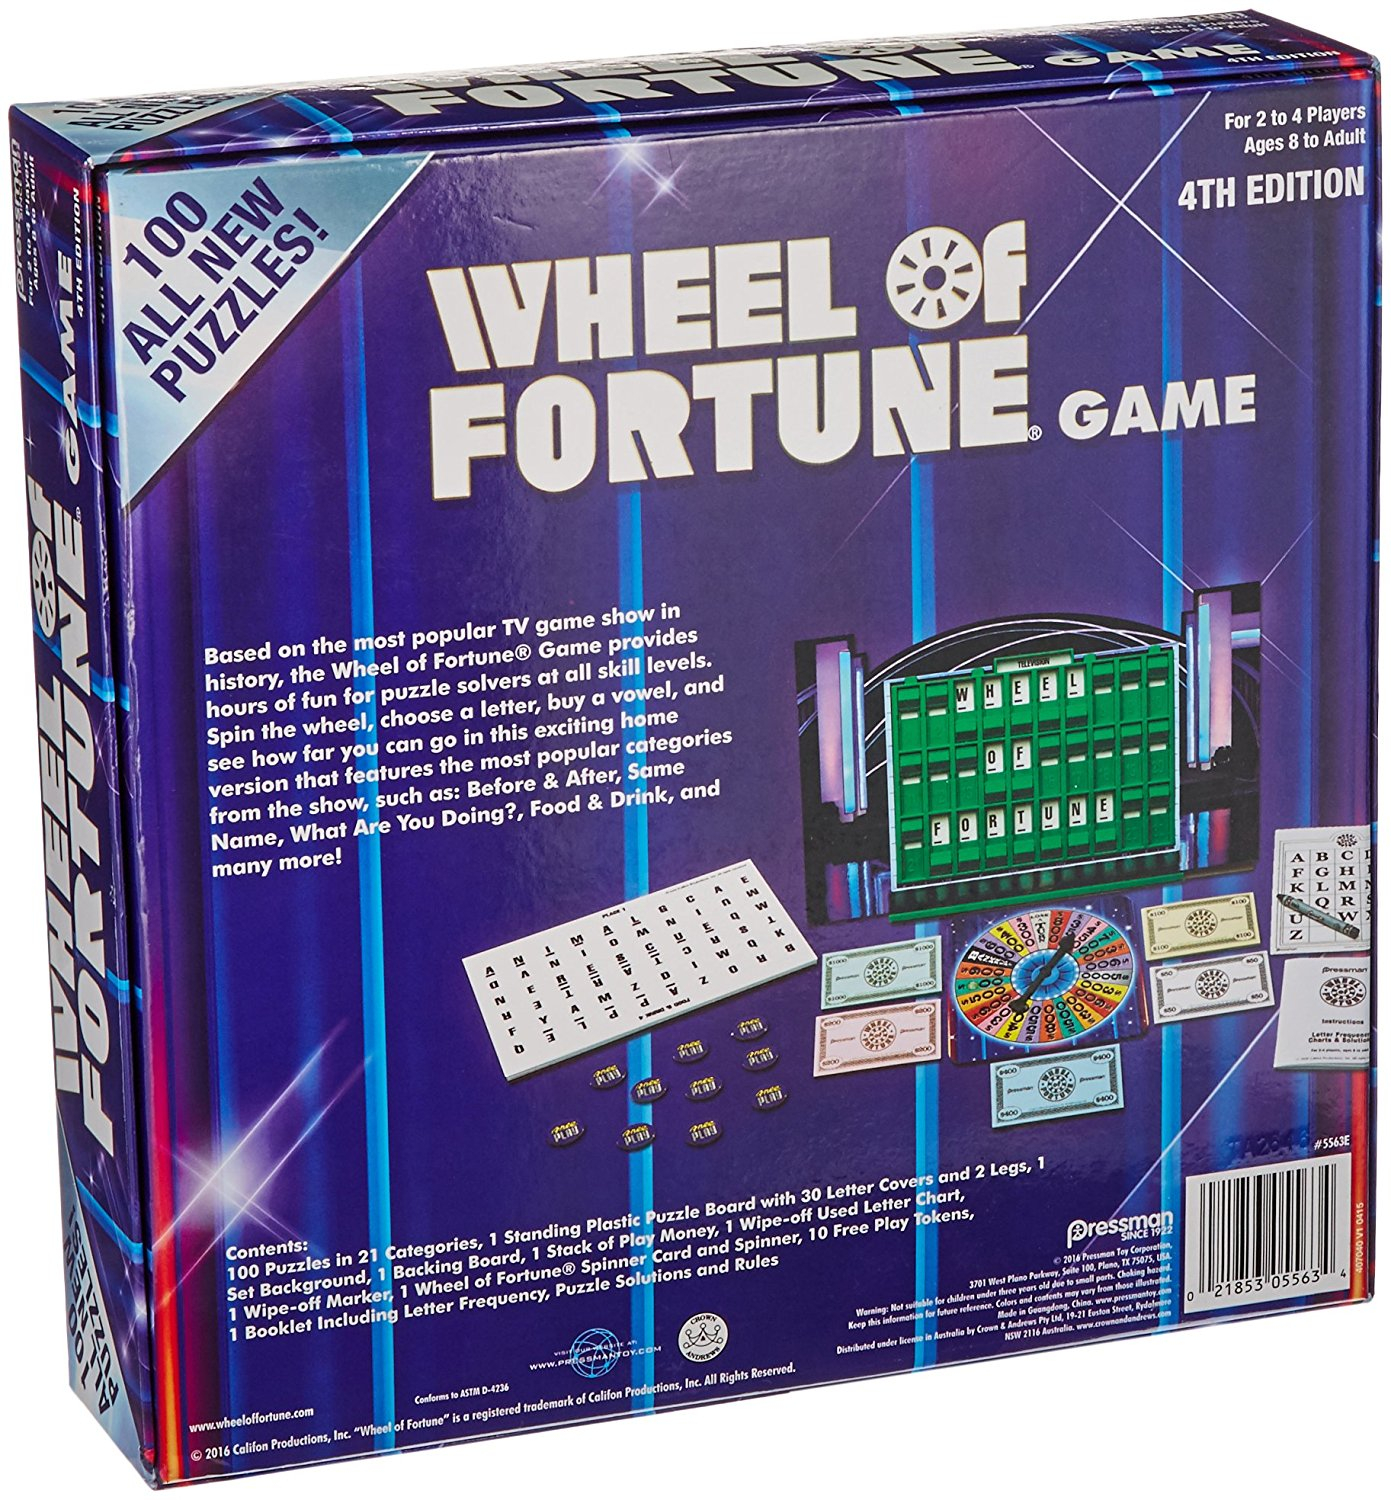 Wheel Of fortune Letter Board Template - How to Make A Wheel fortune Game Wheel fortune Template File